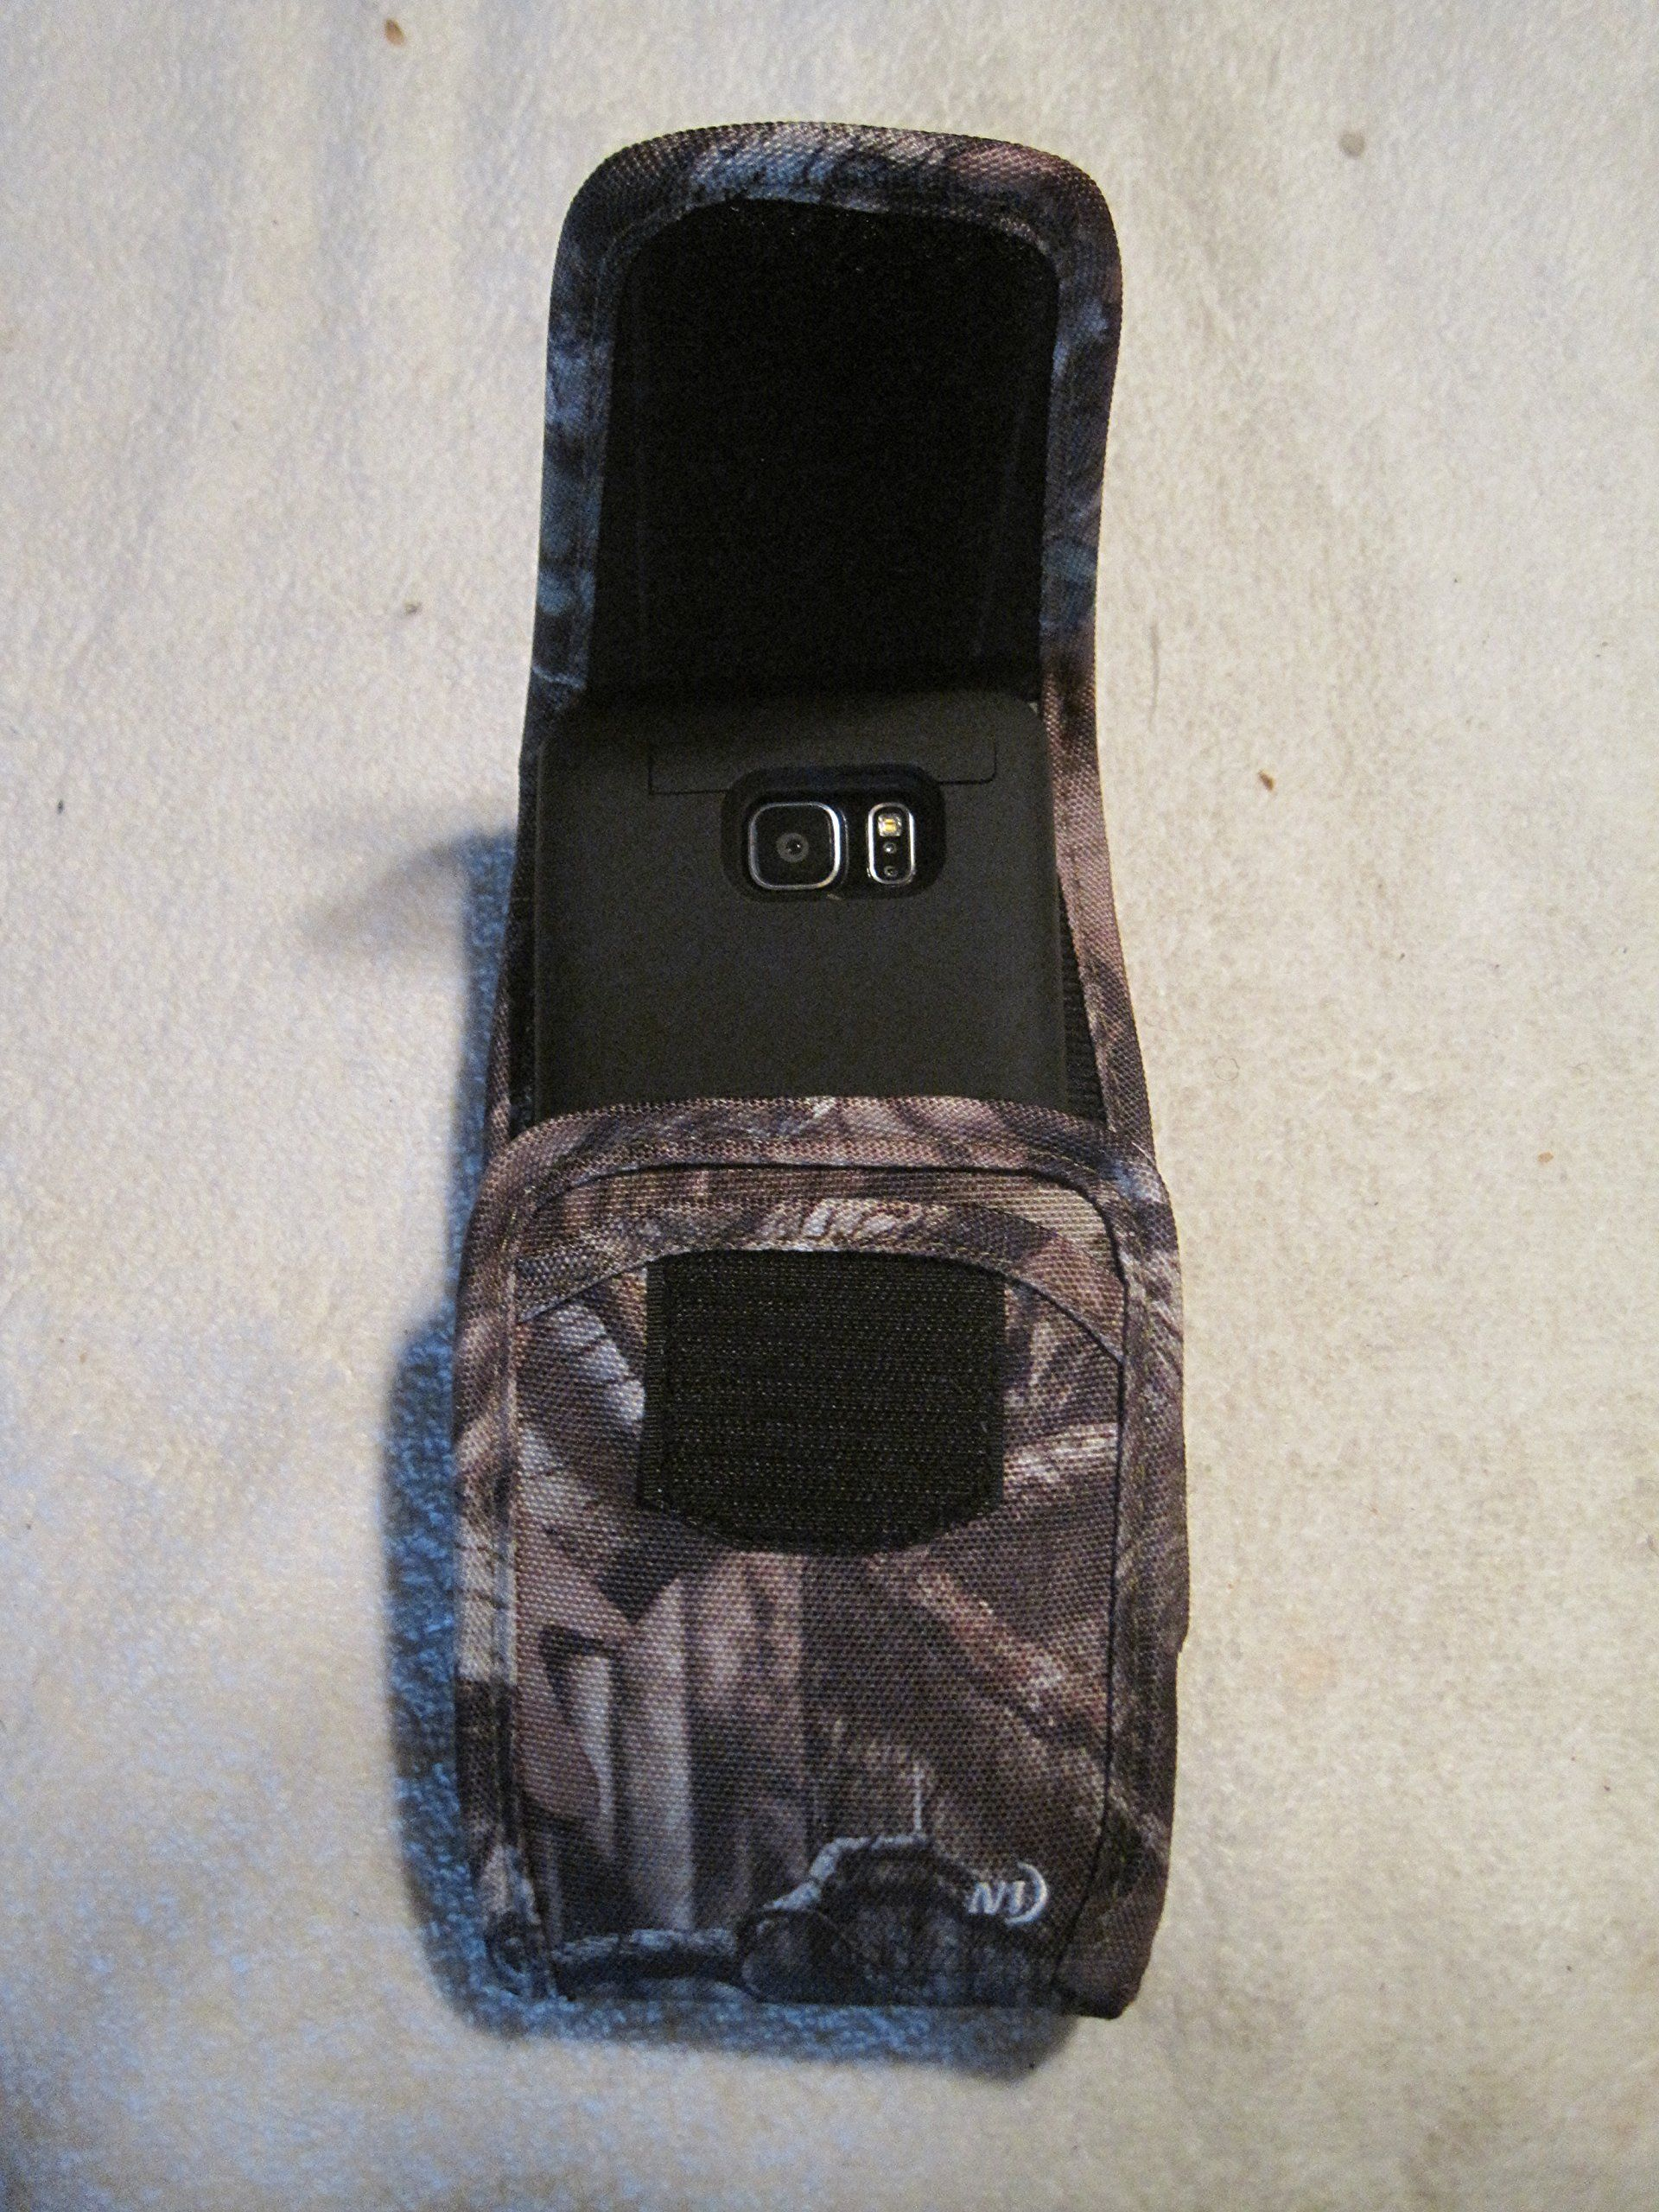 official photos 30e59 a2196 Nite Ize Camouflage Camo Mossy Oak Extended Wide Cargo Heavy Duty ...